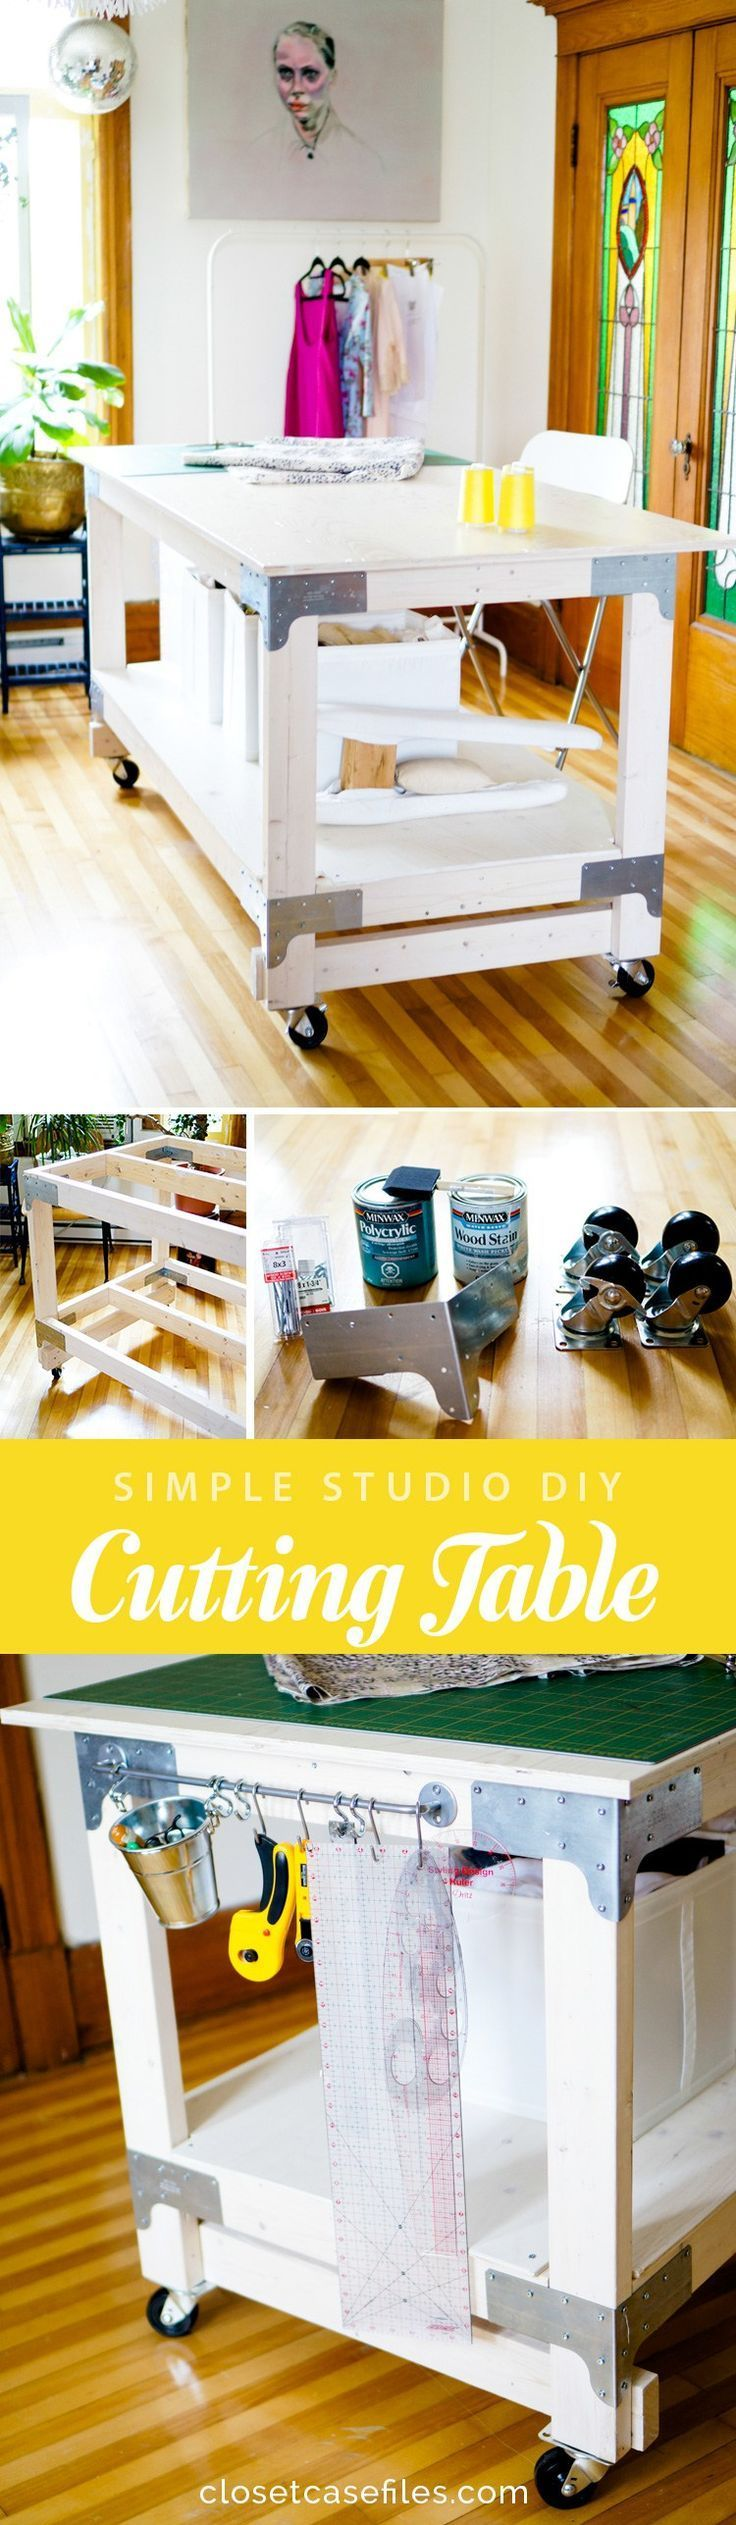 Gentil DIY Cutting Table For Sewing Projects. ||| Oooooh, Neat!!